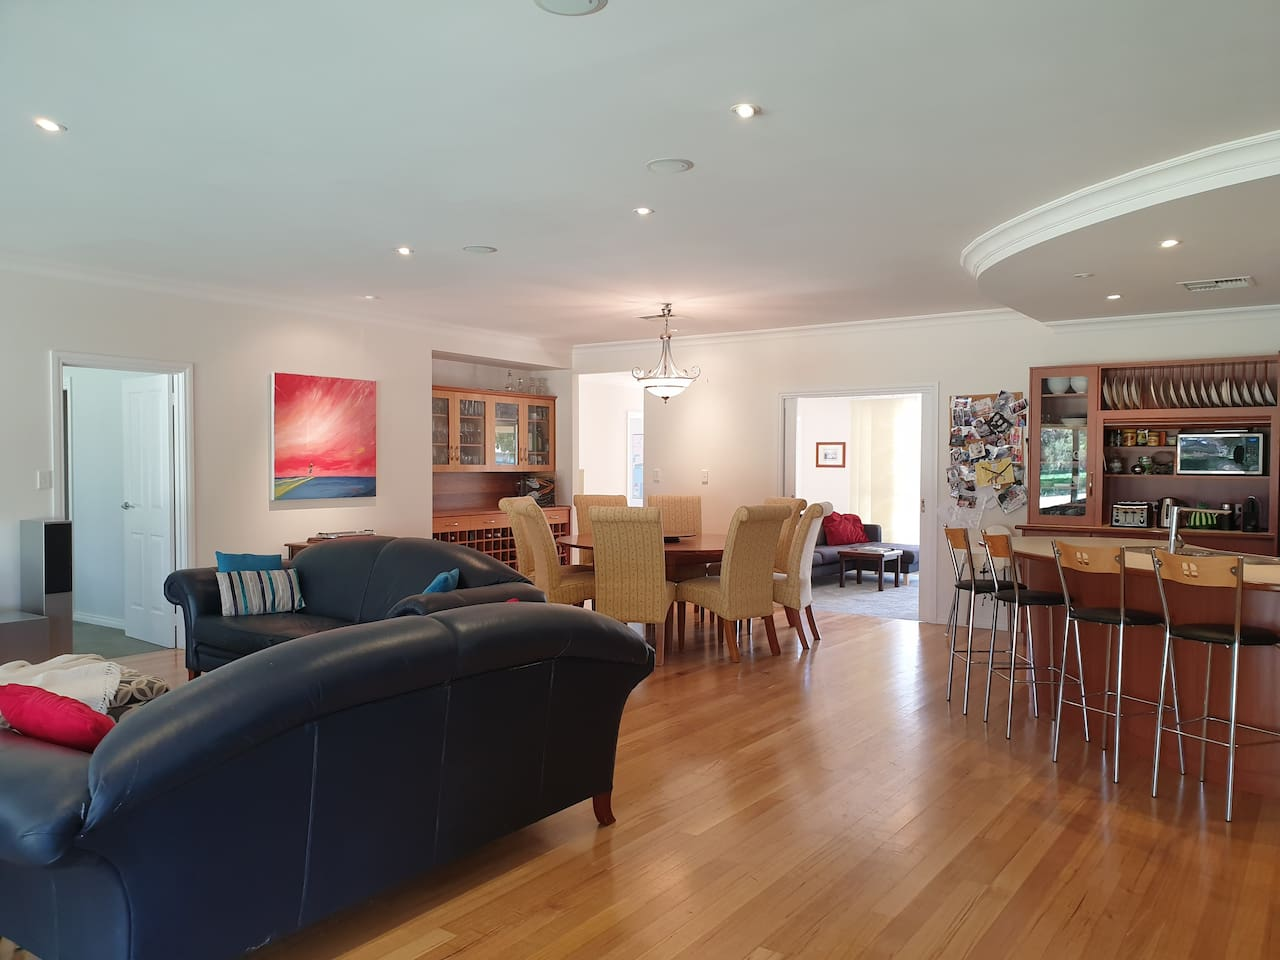 The spacious living areas are ideal for a large group of golfers or several families